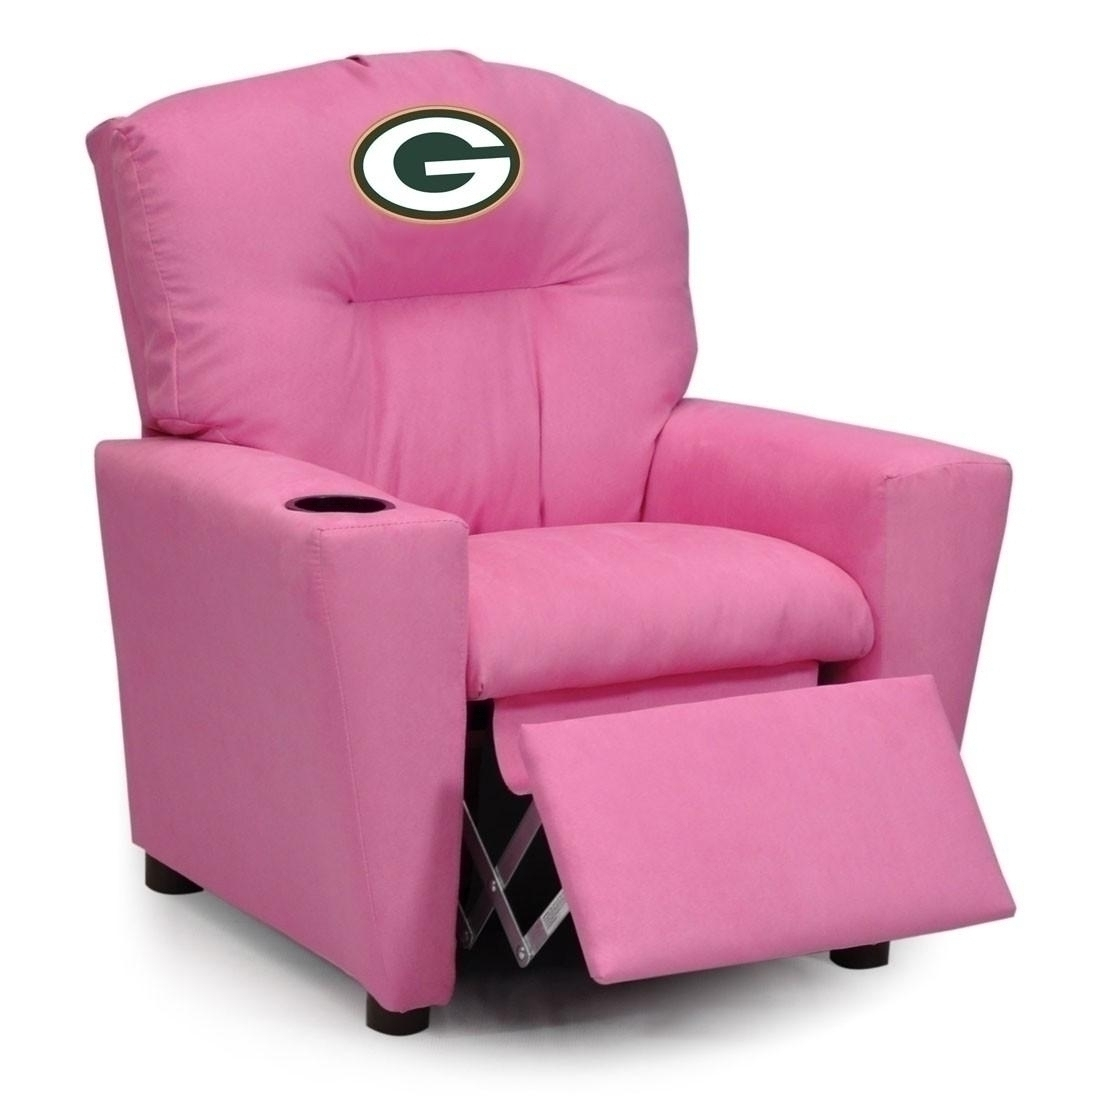 Nfl Football Green Bay Packers Kids Dish Sets - 122-1101 - Green Bay Packers Kids Pink Recliner 122-1101